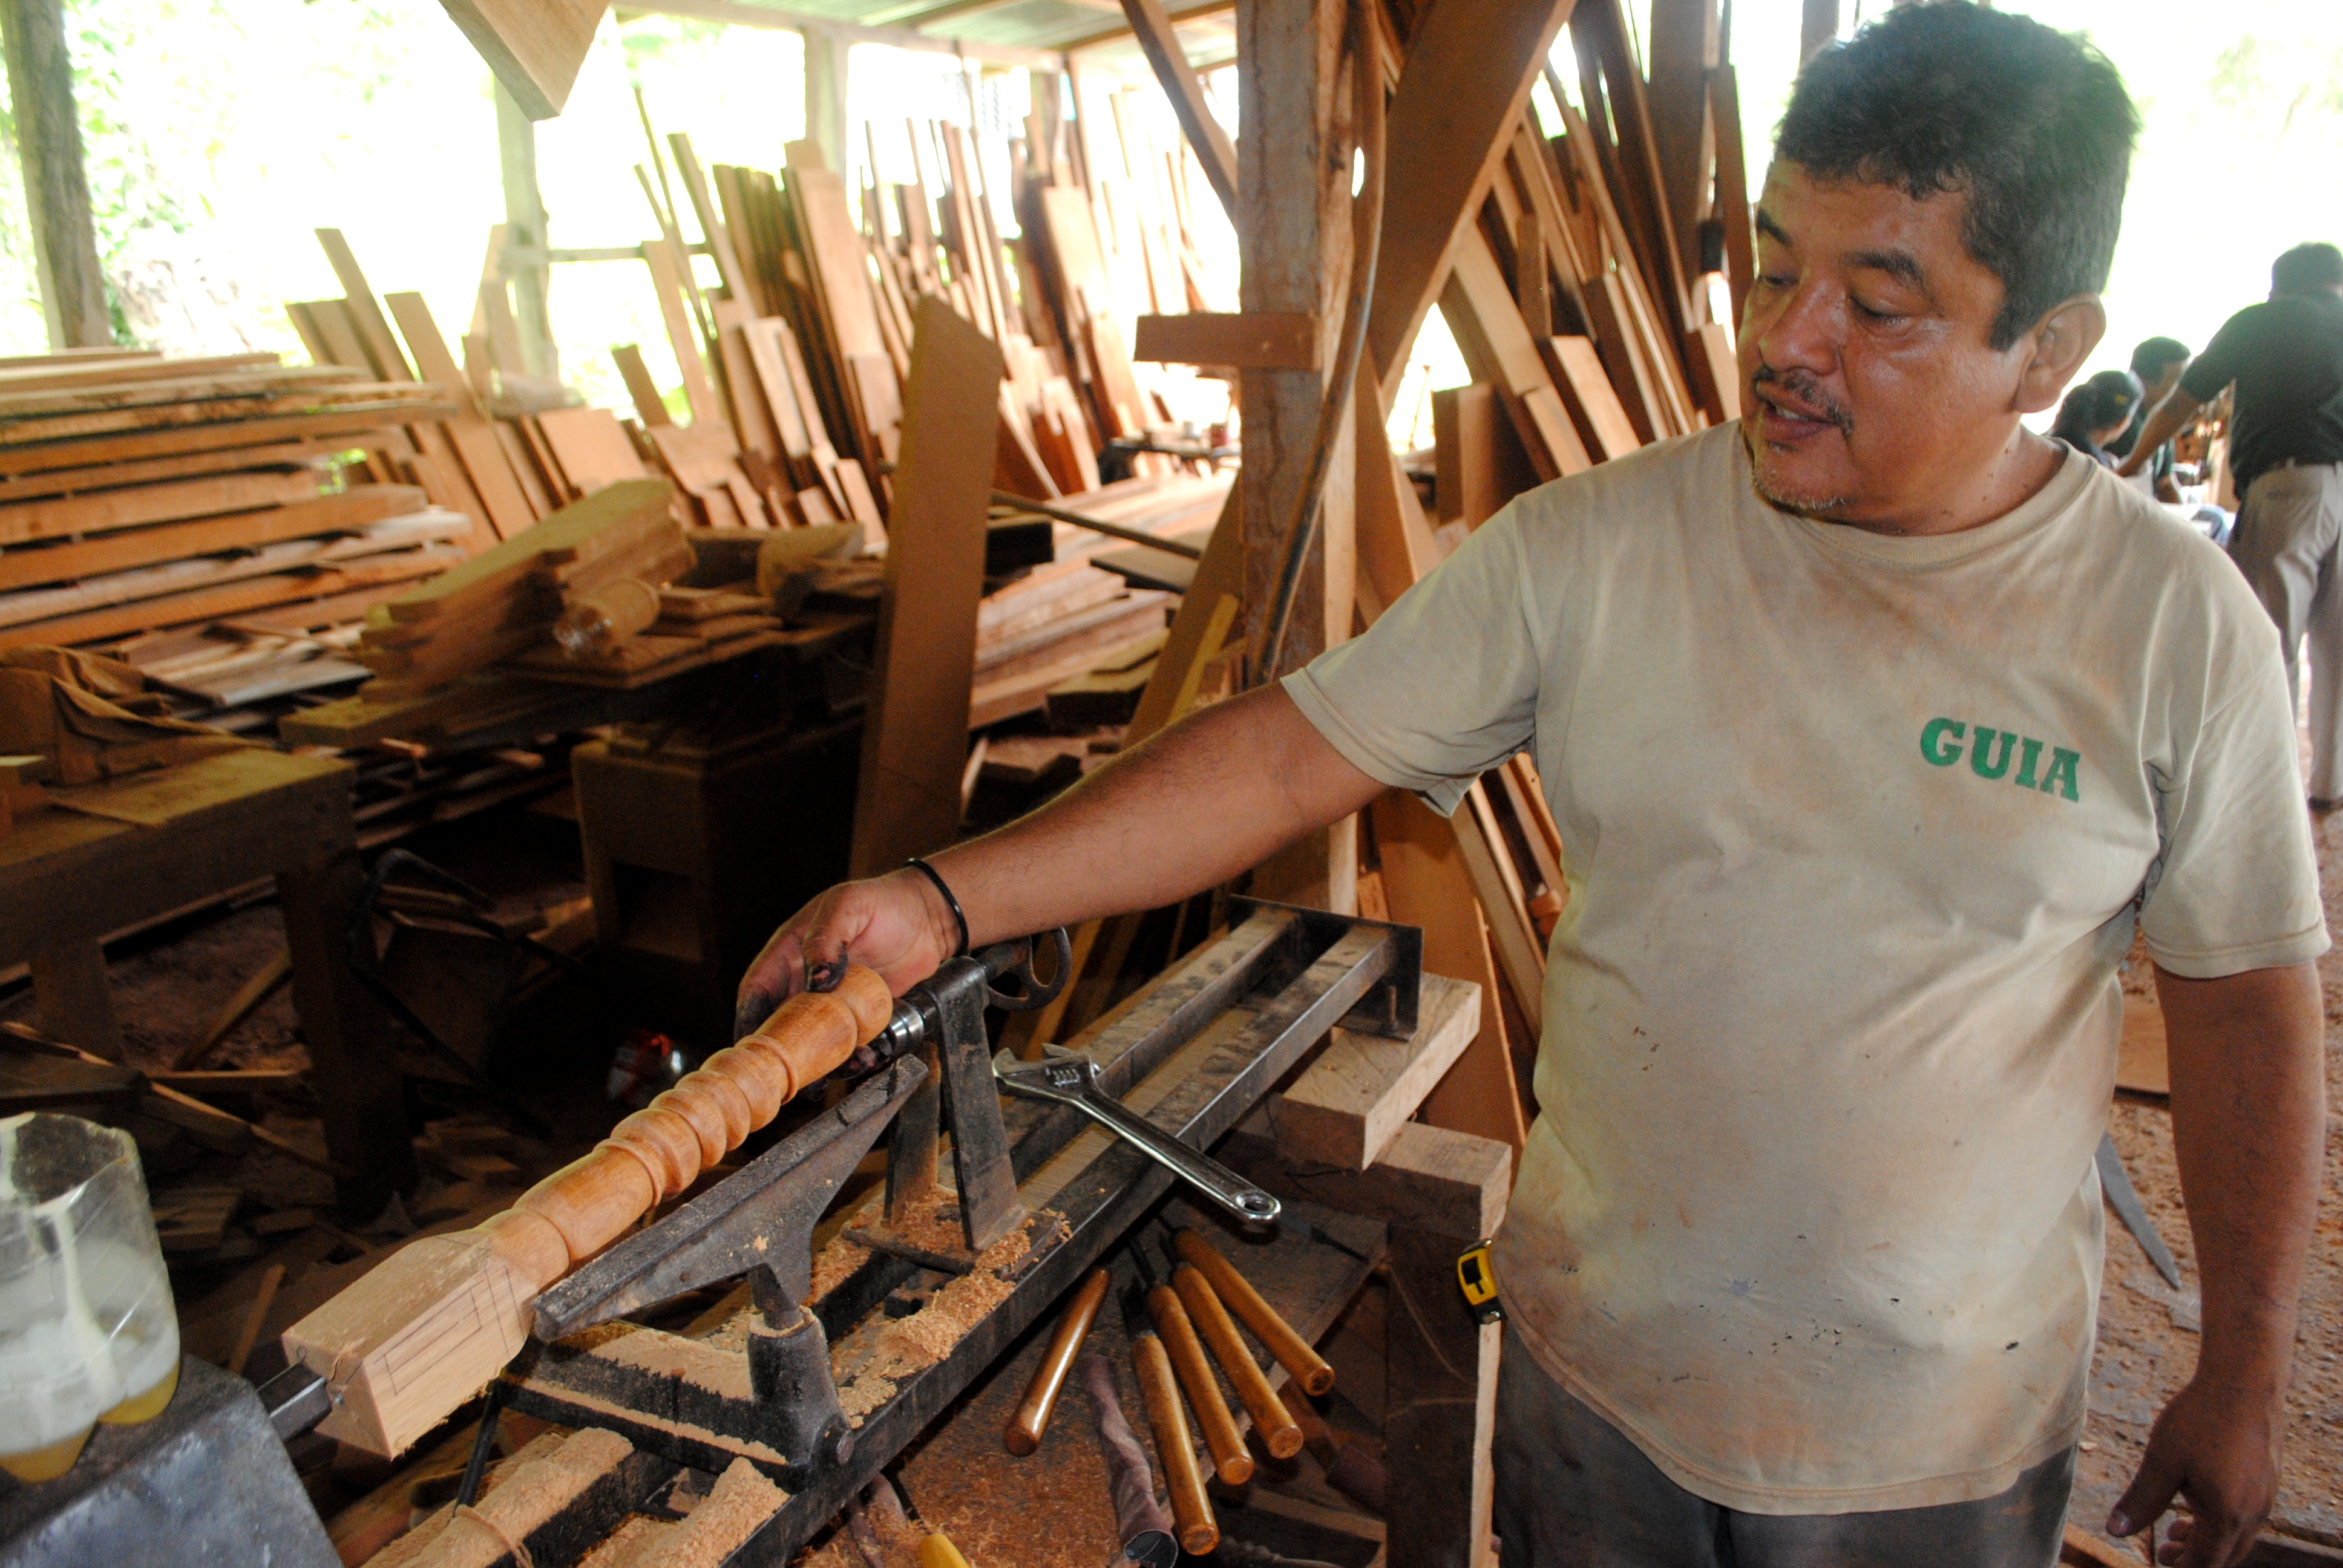 Rocaél Peña, a carpenter and woodworker in Uaxactún, demonstrates some of the new tools and techniques.